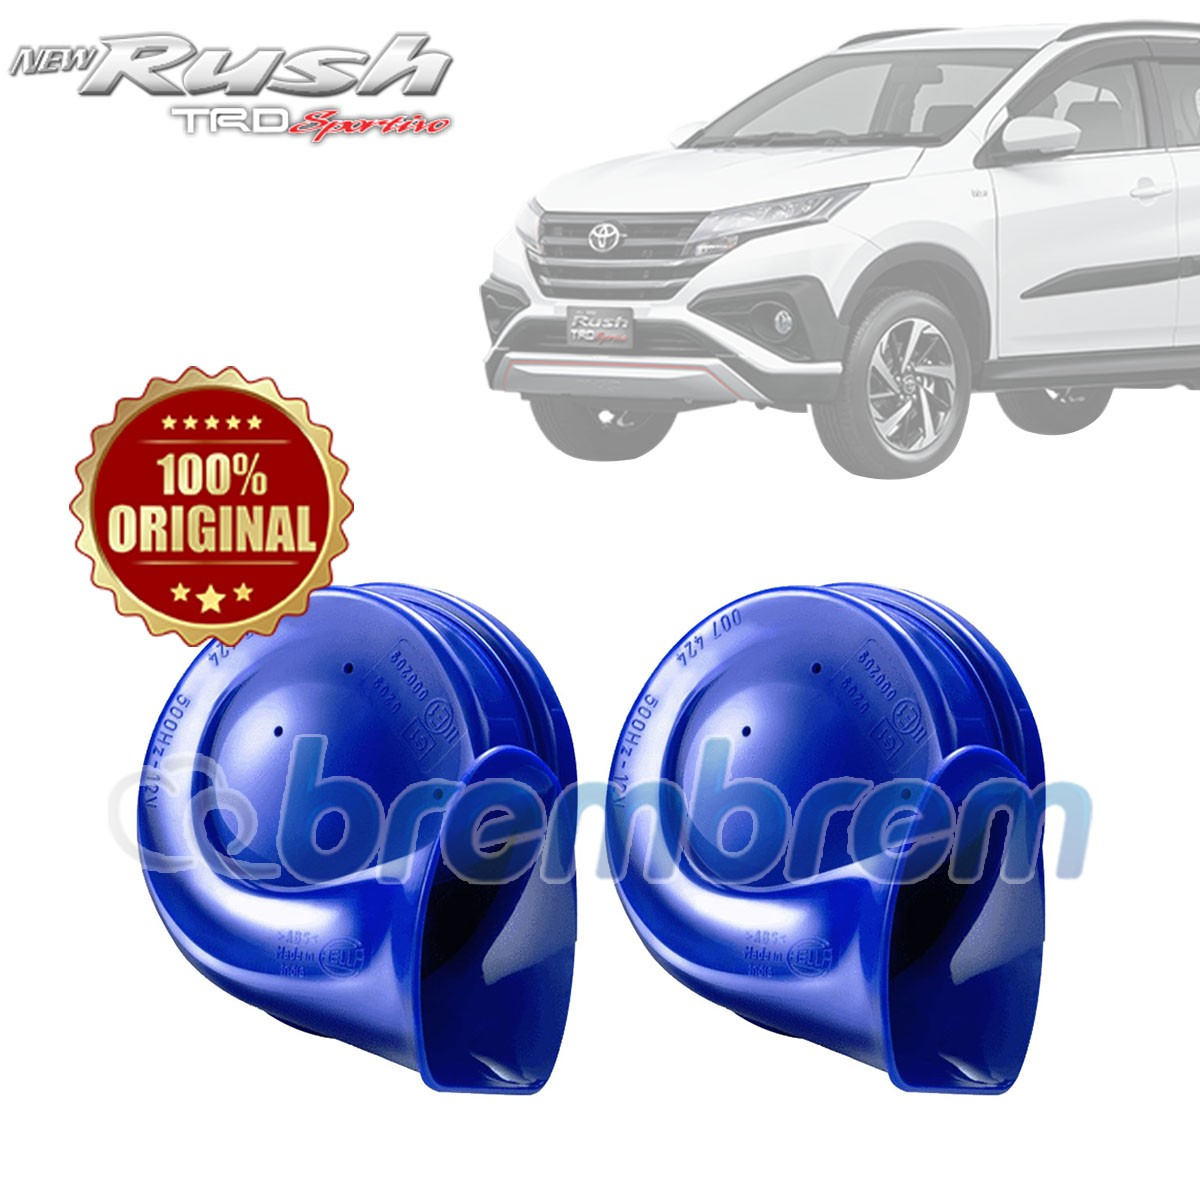 HELLA BLUE TWIN TONE - KLAKSON MOBIL TOYOTA ALL NEW RUSH